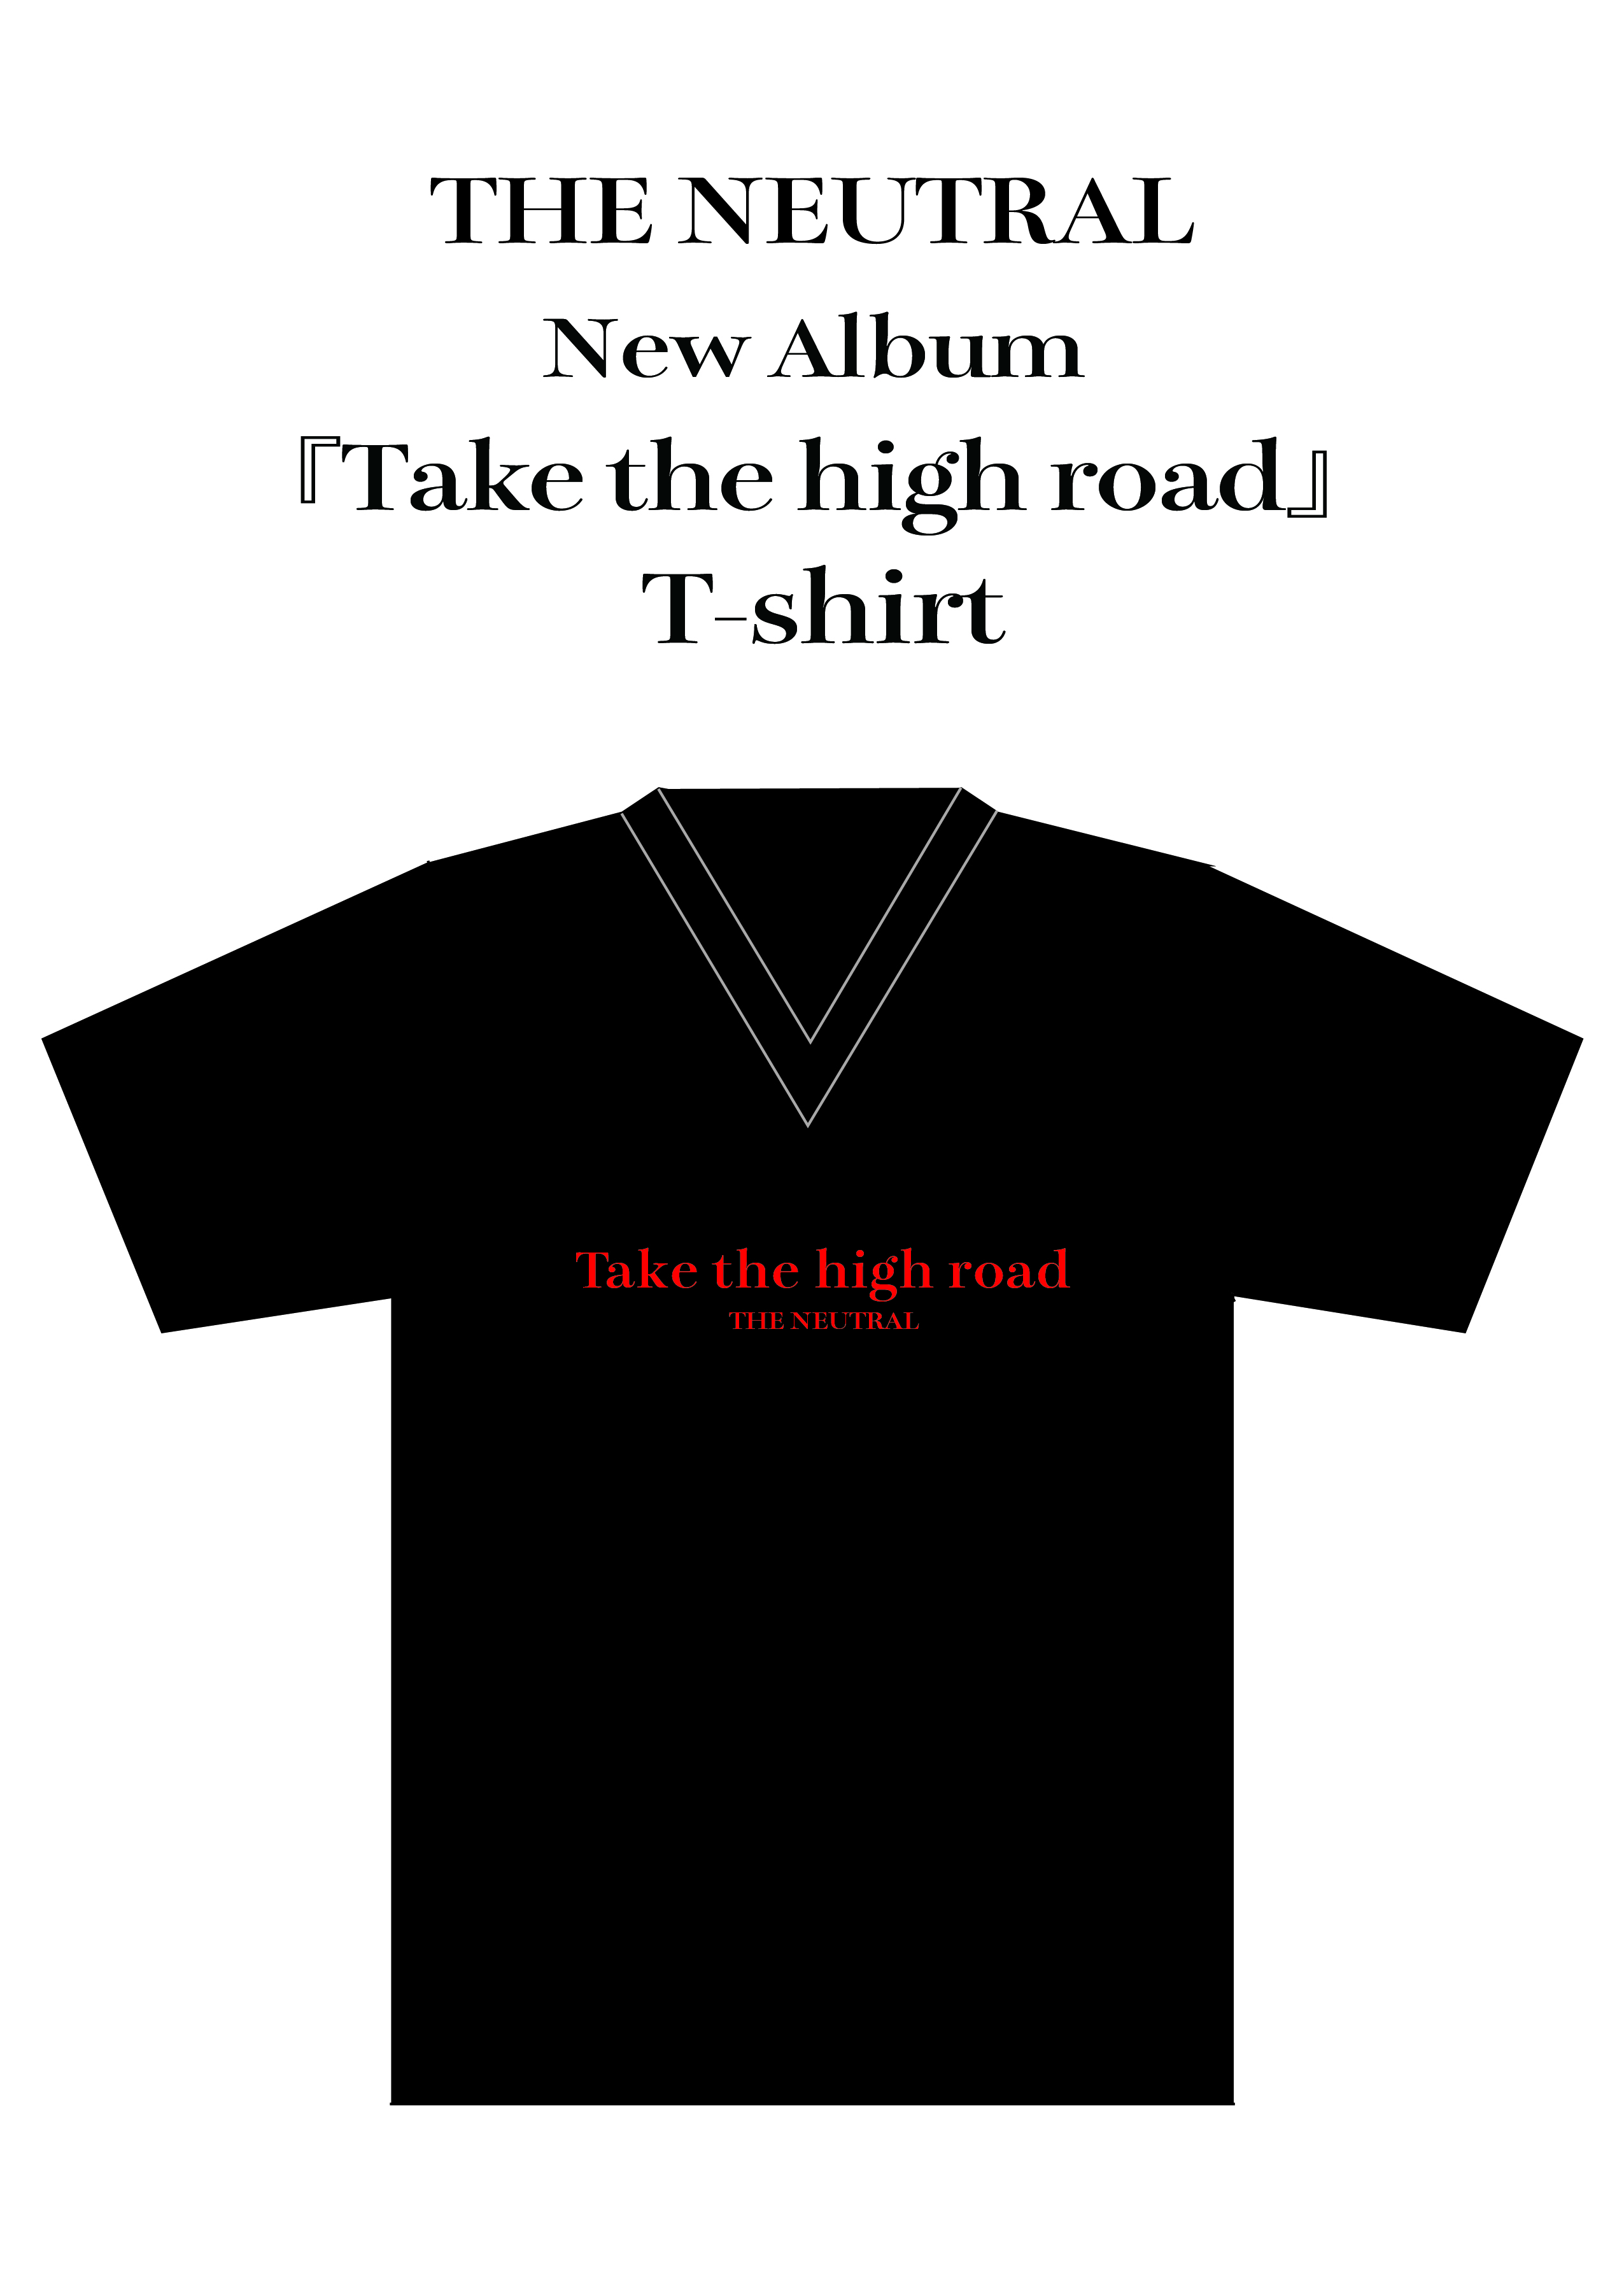 『Take the high road』Tシャツ発売決定!